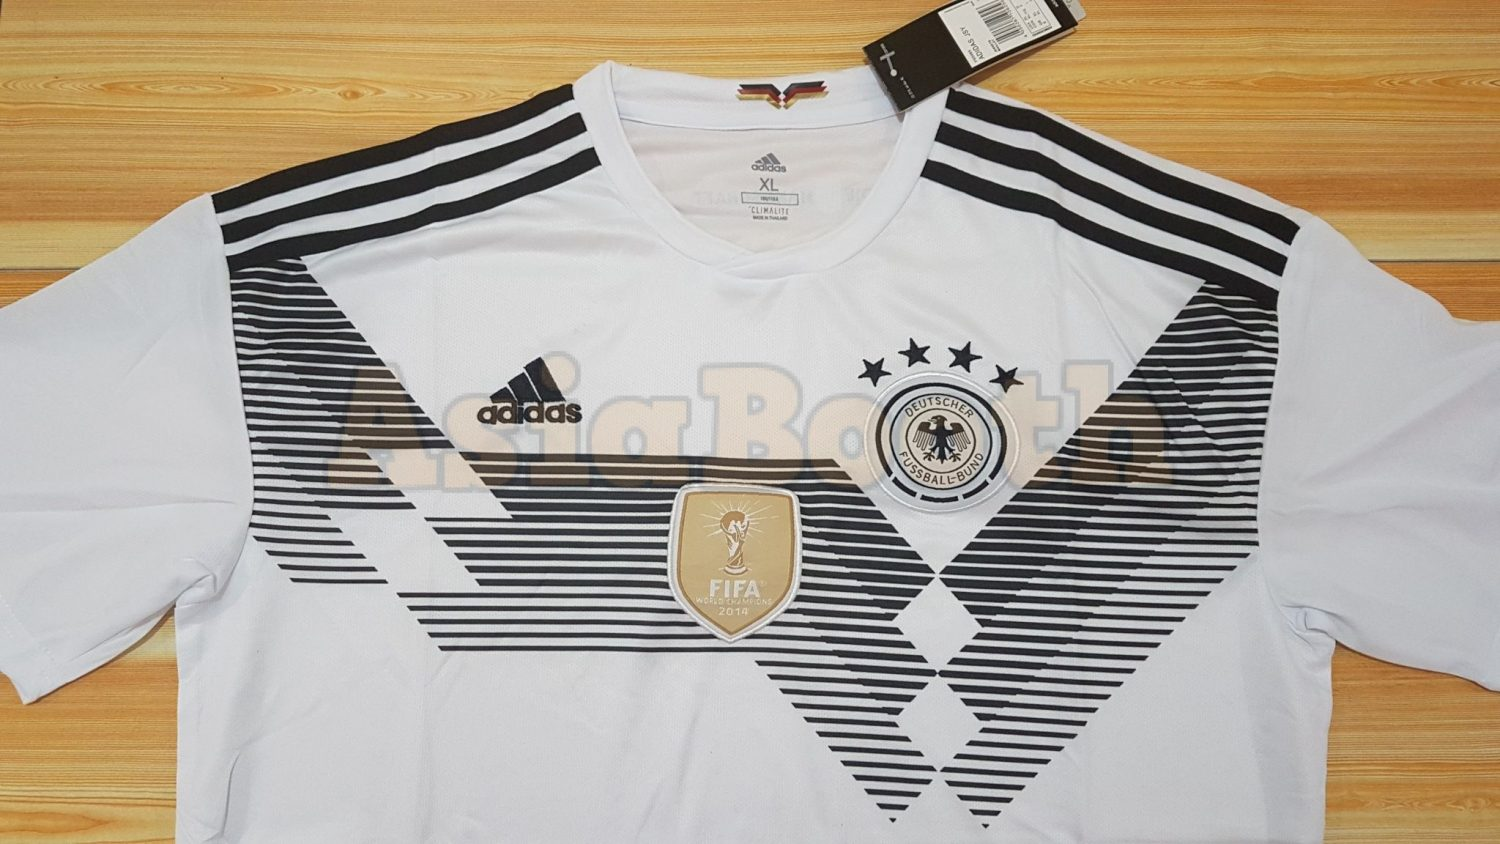 d8af08277 2018 FIFA World Cup Jersey - Germany Shirt - Asia Booth